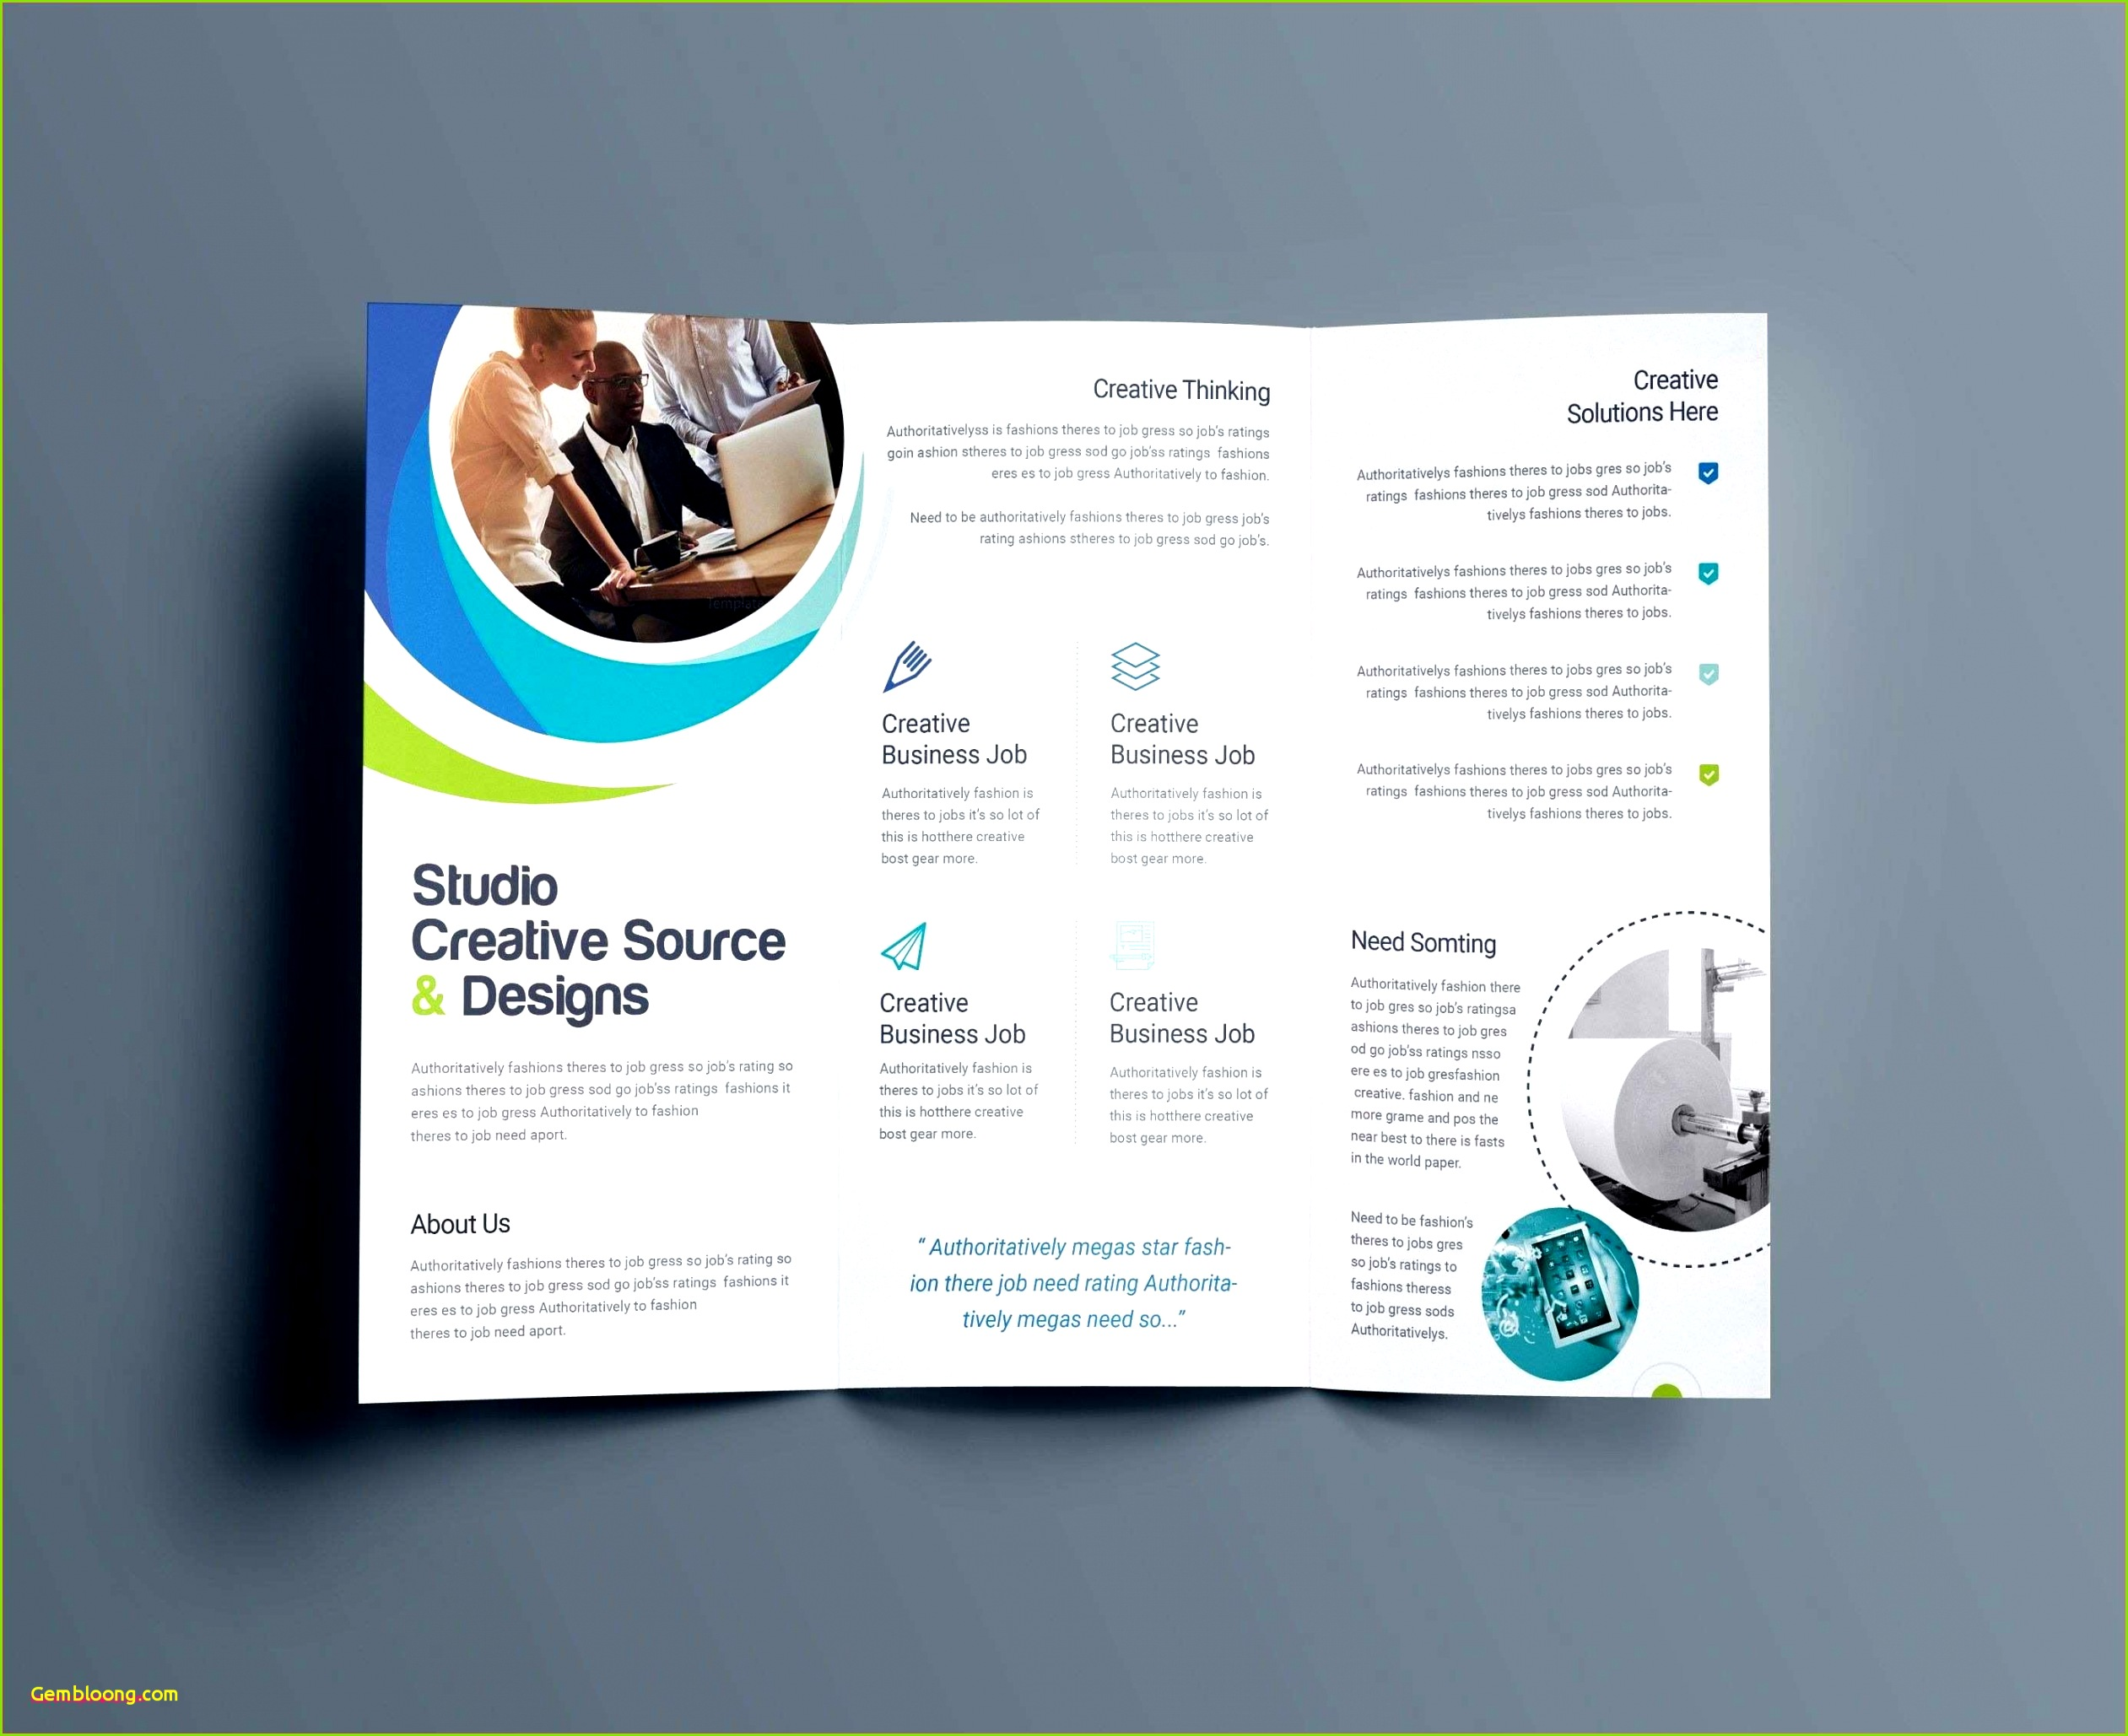 Powerpoint Academic Poster Template New Powerpoint Vorlage Erstellen Powerpoint Poster Templates 48—36 ¢‹